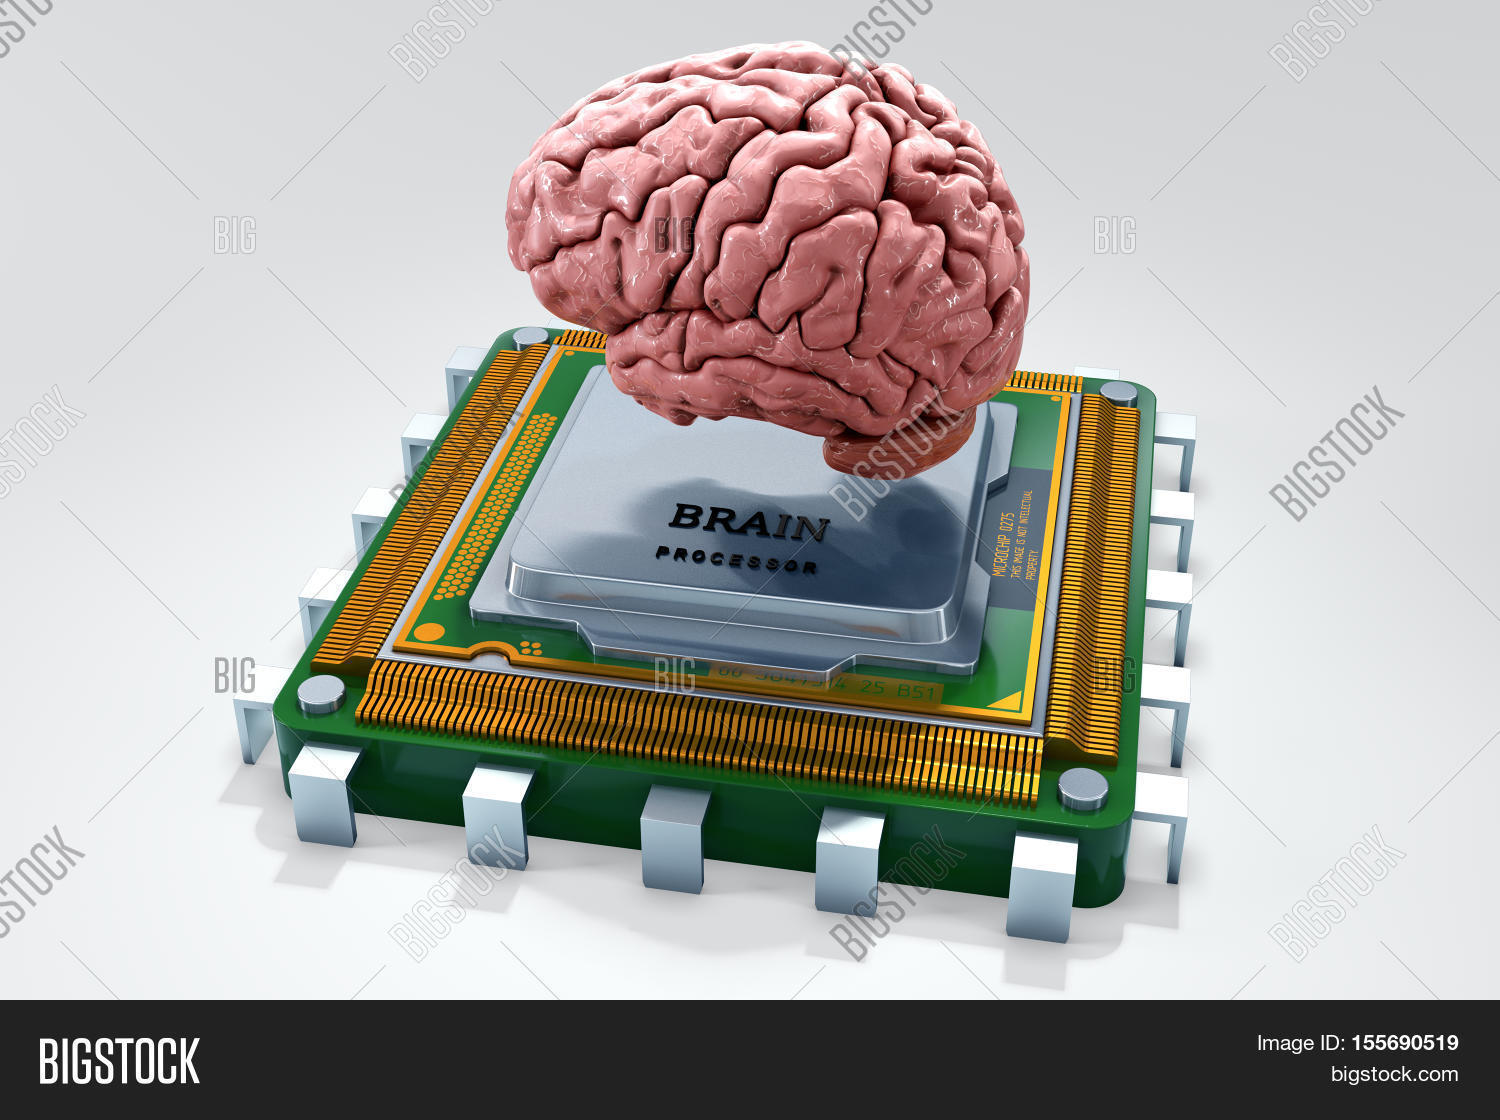 human brain computer image \u0026 photo (free trial) bigstockhuman brain with computer processor isolated on white concept 3d render illustration